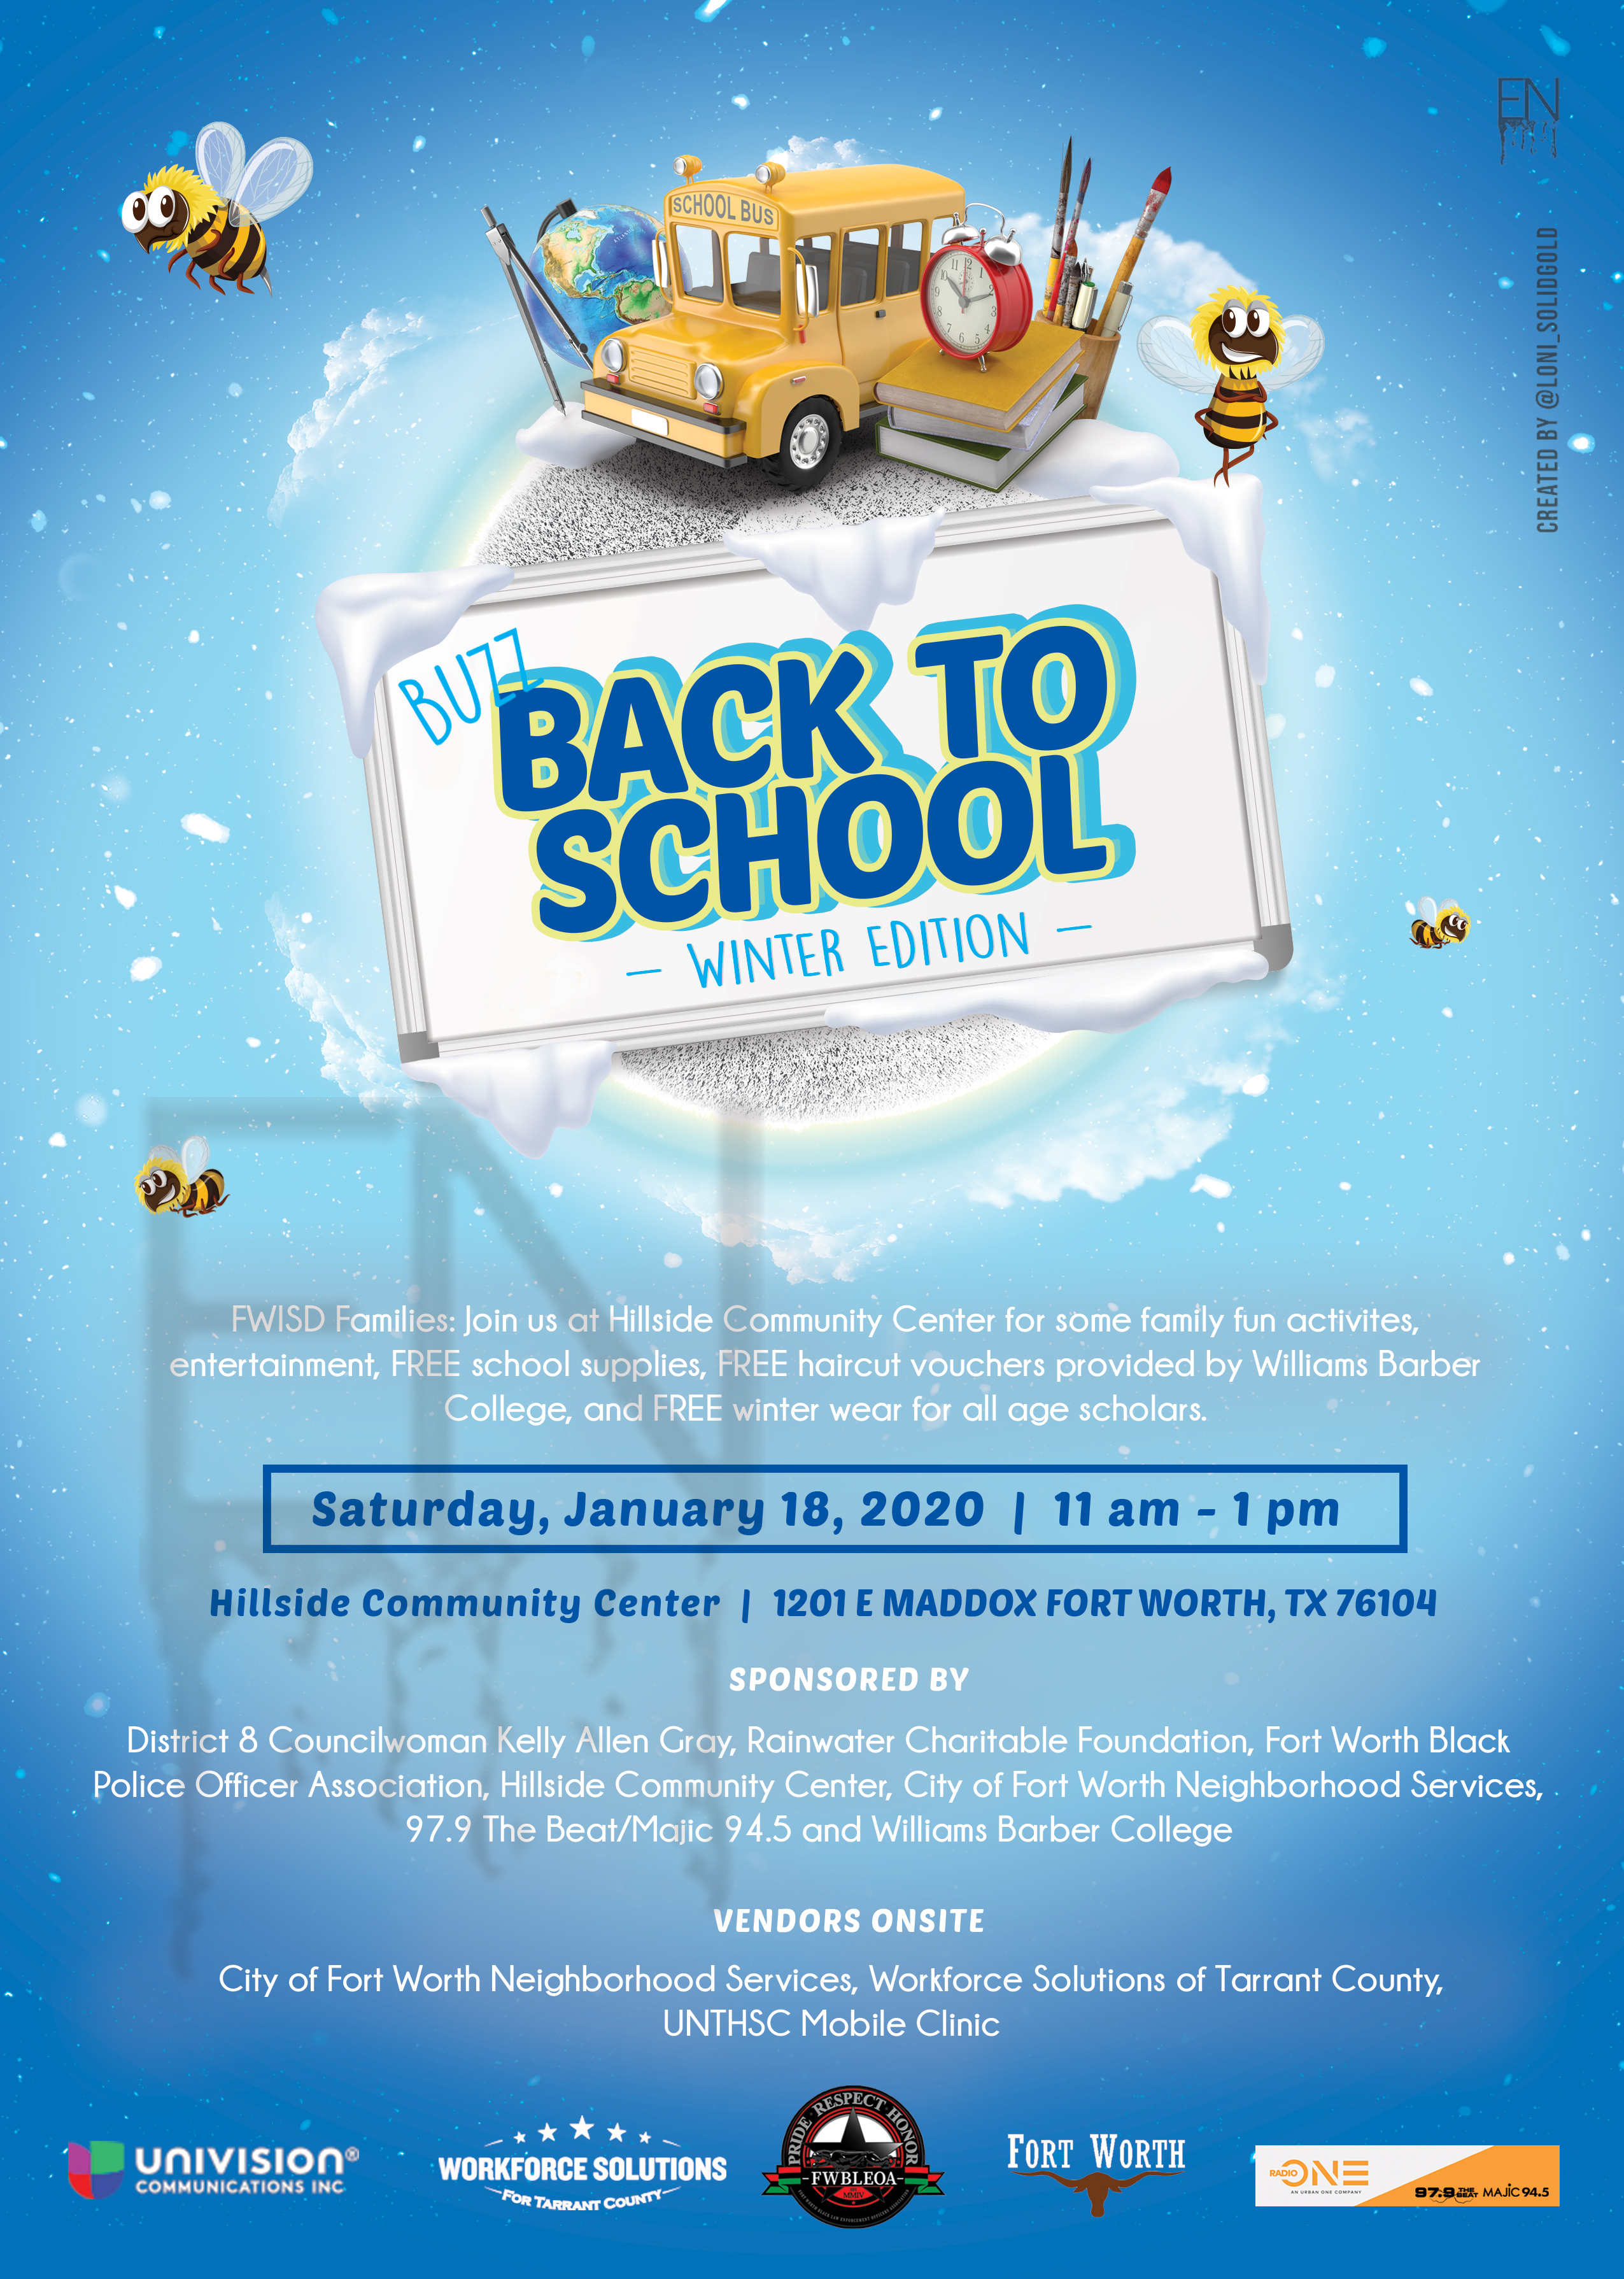 Buzz Back To School Winter Edition